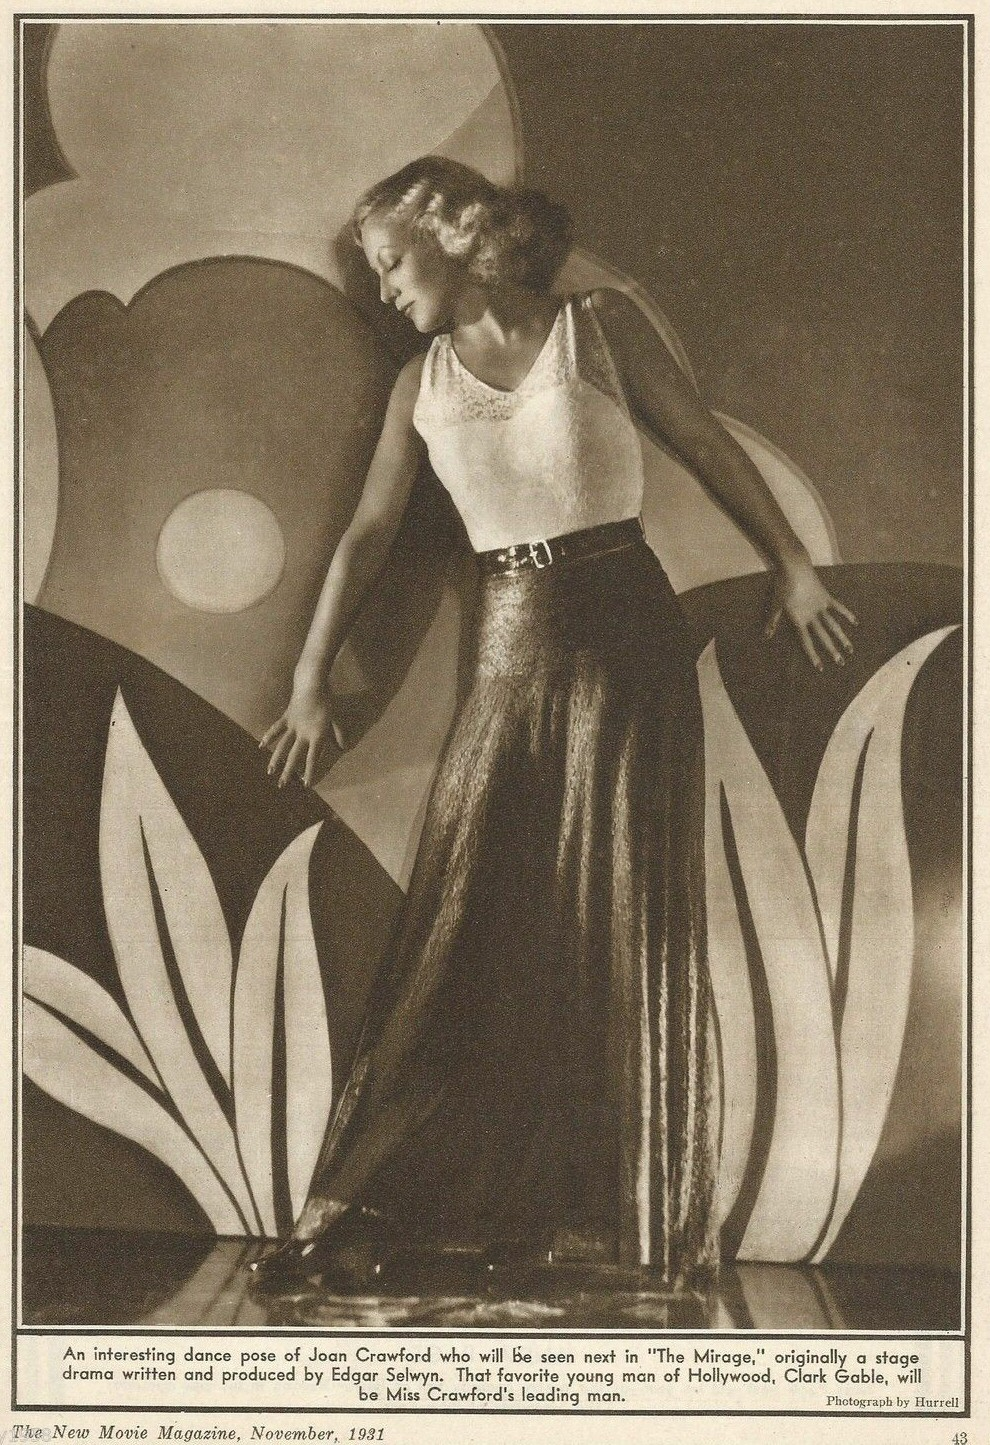 Shot by Hurrell, appearing in the November 1931 'New Movie' magazine.